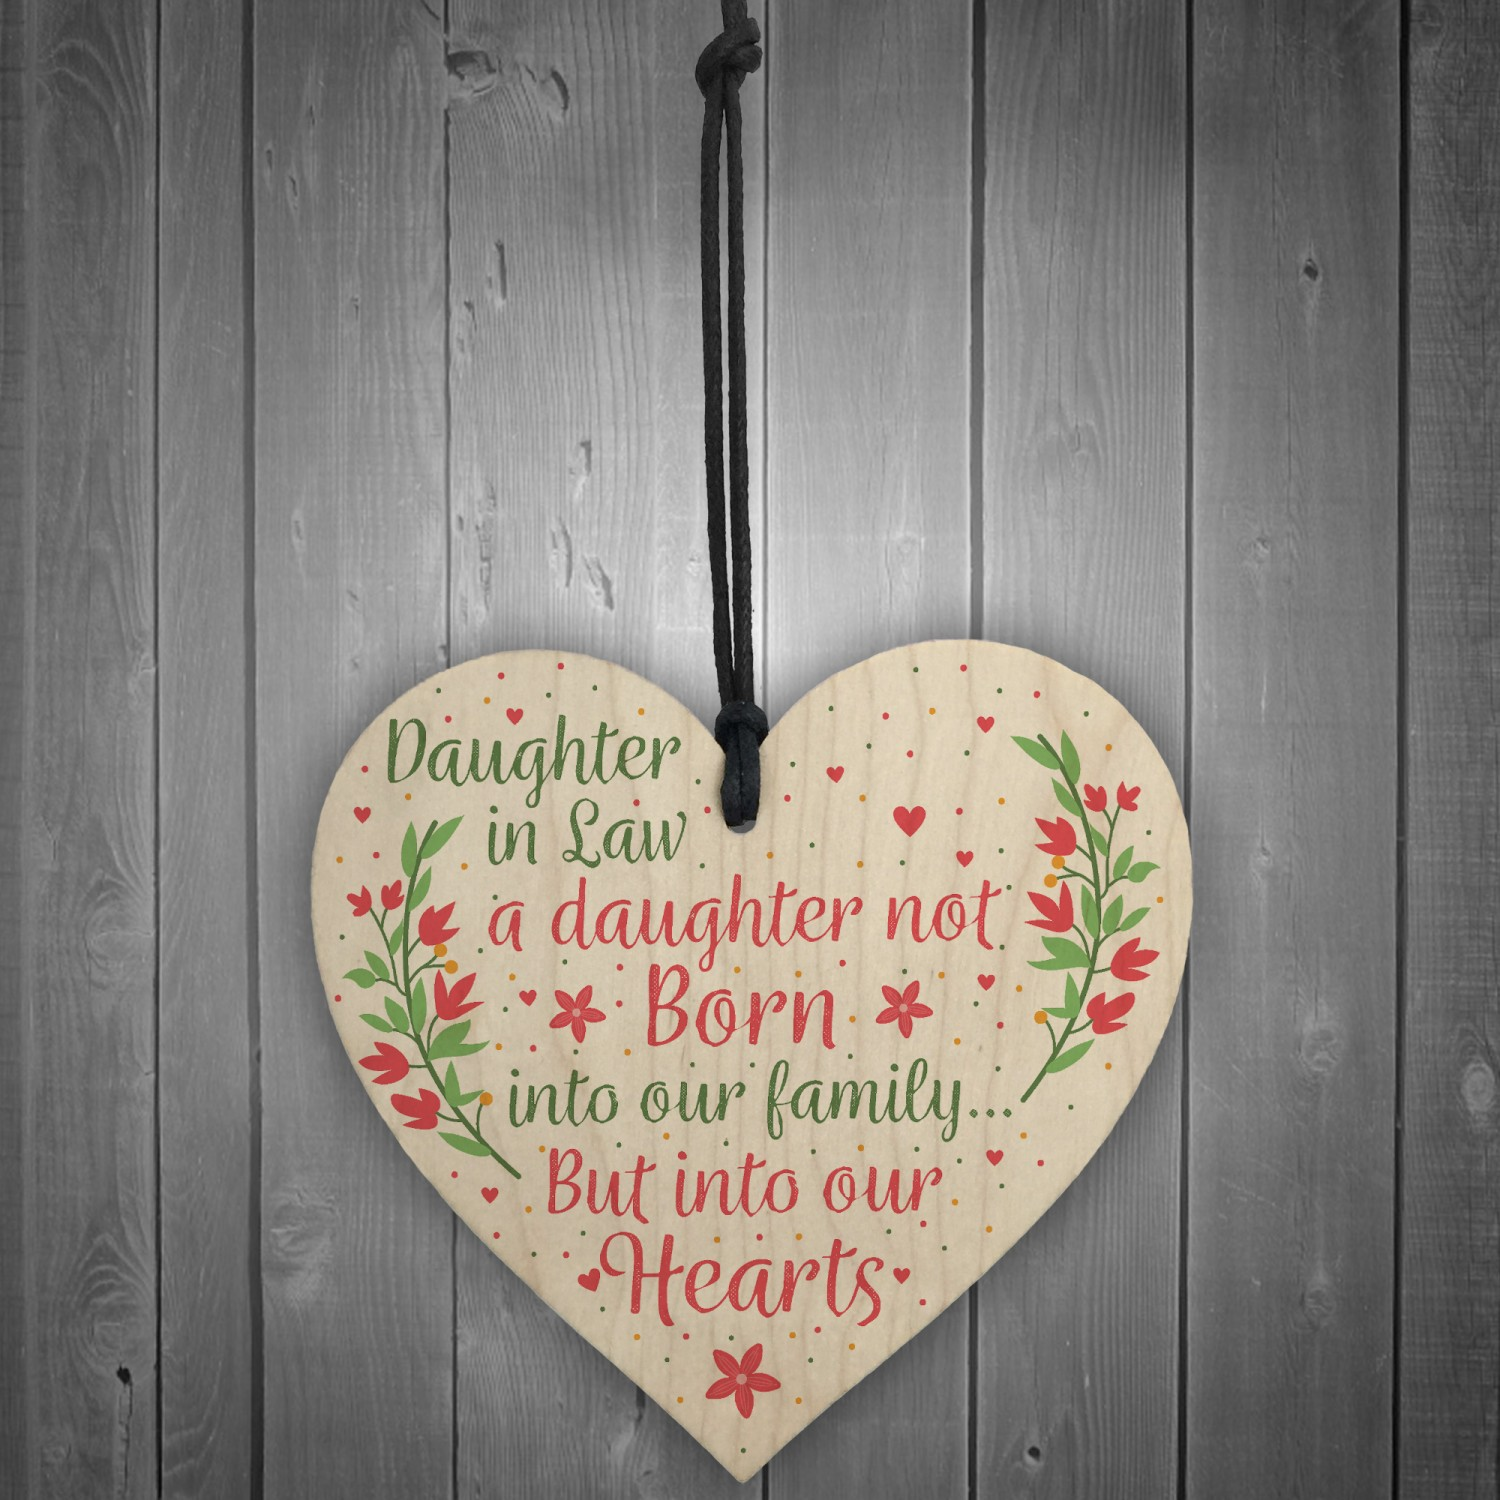 Son And Daughter In Law Wedding Day Birthday Christmas GIFTS